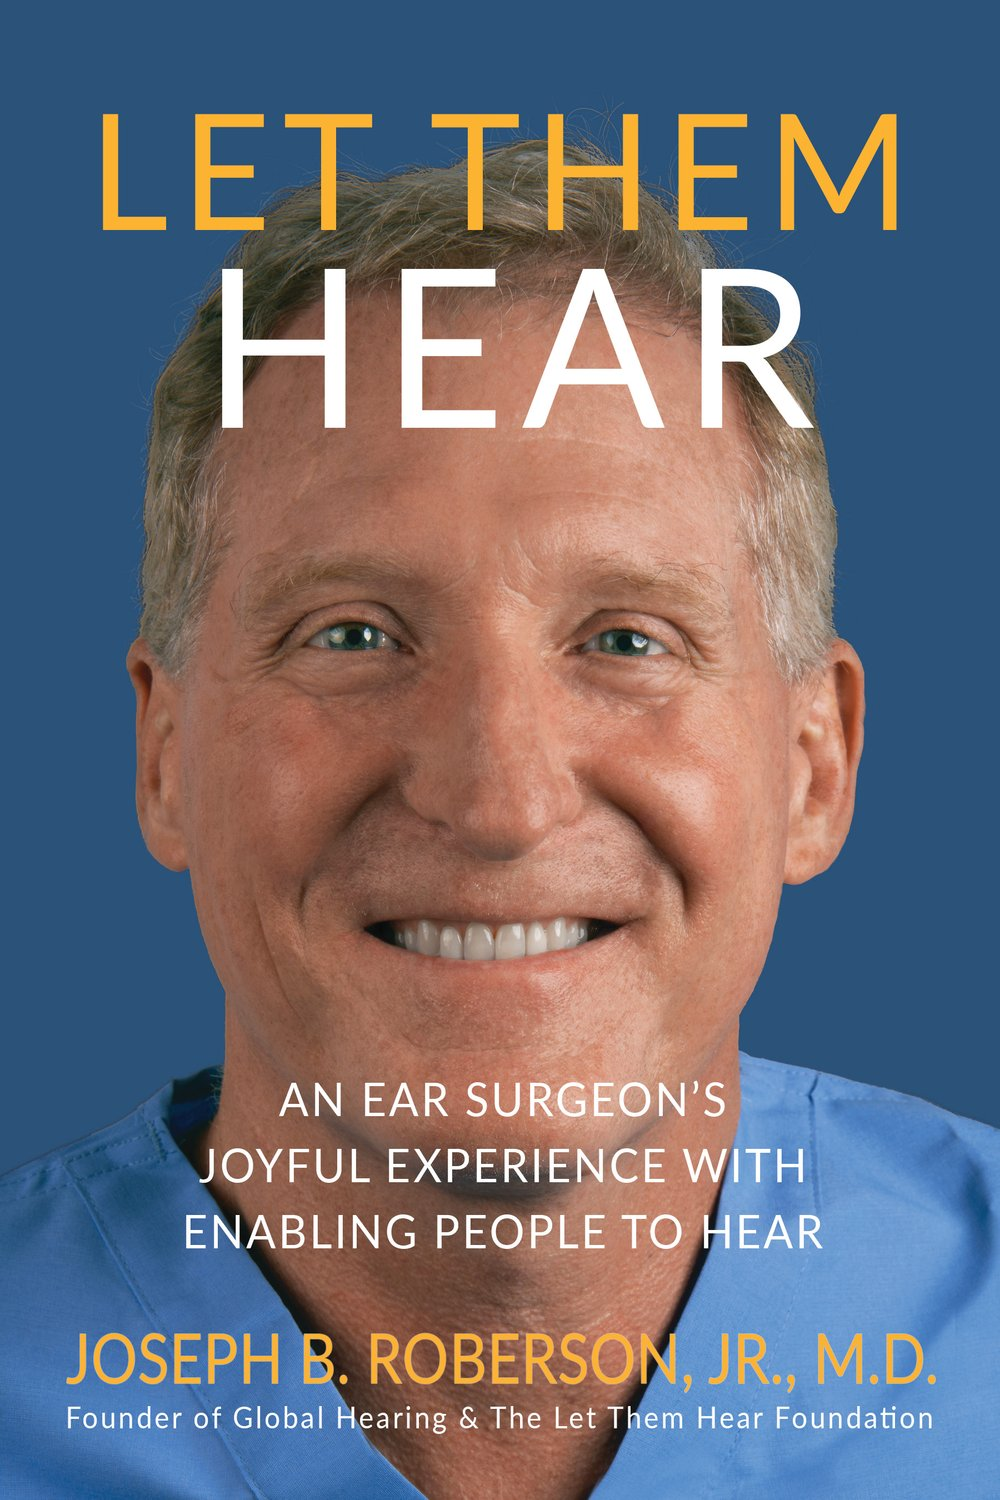 "Let Them Hear: An Ear Surgeon's Joyful Experience with Enabling People to Hear (by Joseph B. Roberson, Jr., M.D.)$15.99 - Let them hear. That simple phrase embodies Dr. Joseph Roberson's calling to be more than just one of the world's best ear surgeons—but also an instrument of healing and a witness of God's goodness in places both dark and light.As Founder of the Let Them Hear Foundation, a nonprofit established to bring hearing internationally to deaf persons in need, Dr. Roberson has found deep joy in using his surgical giftings to change lives worldwide, often in difficult and complex surgeries to place cochlear implants in persons who would normally be unable to afford them.Now, he has compiled some of the most powerful tales his unique vocation has led him into and woven them into a book that is as riveting as it is uplifting.Tracing the pinnacles and low points of Roberson's impressive career, this memoir transports you to moving and exciting stories of medical work across a global front. You'll experience first-hand the devastation of loss and the joy in recovery; you'll be pressed in for a close glimpse at the gritty, harsh world of the emergency room; and you'll follow Dr. Roberson into the dangerous—and sometimes bizarre—jungles of the third world, both literal and metaphorical.Most importantly, like Dr. Roberson, you too will be confronted with, and stunned by, the beautiful, miraculous power of healing—one stemming from the simple calling to ""let them hear."""